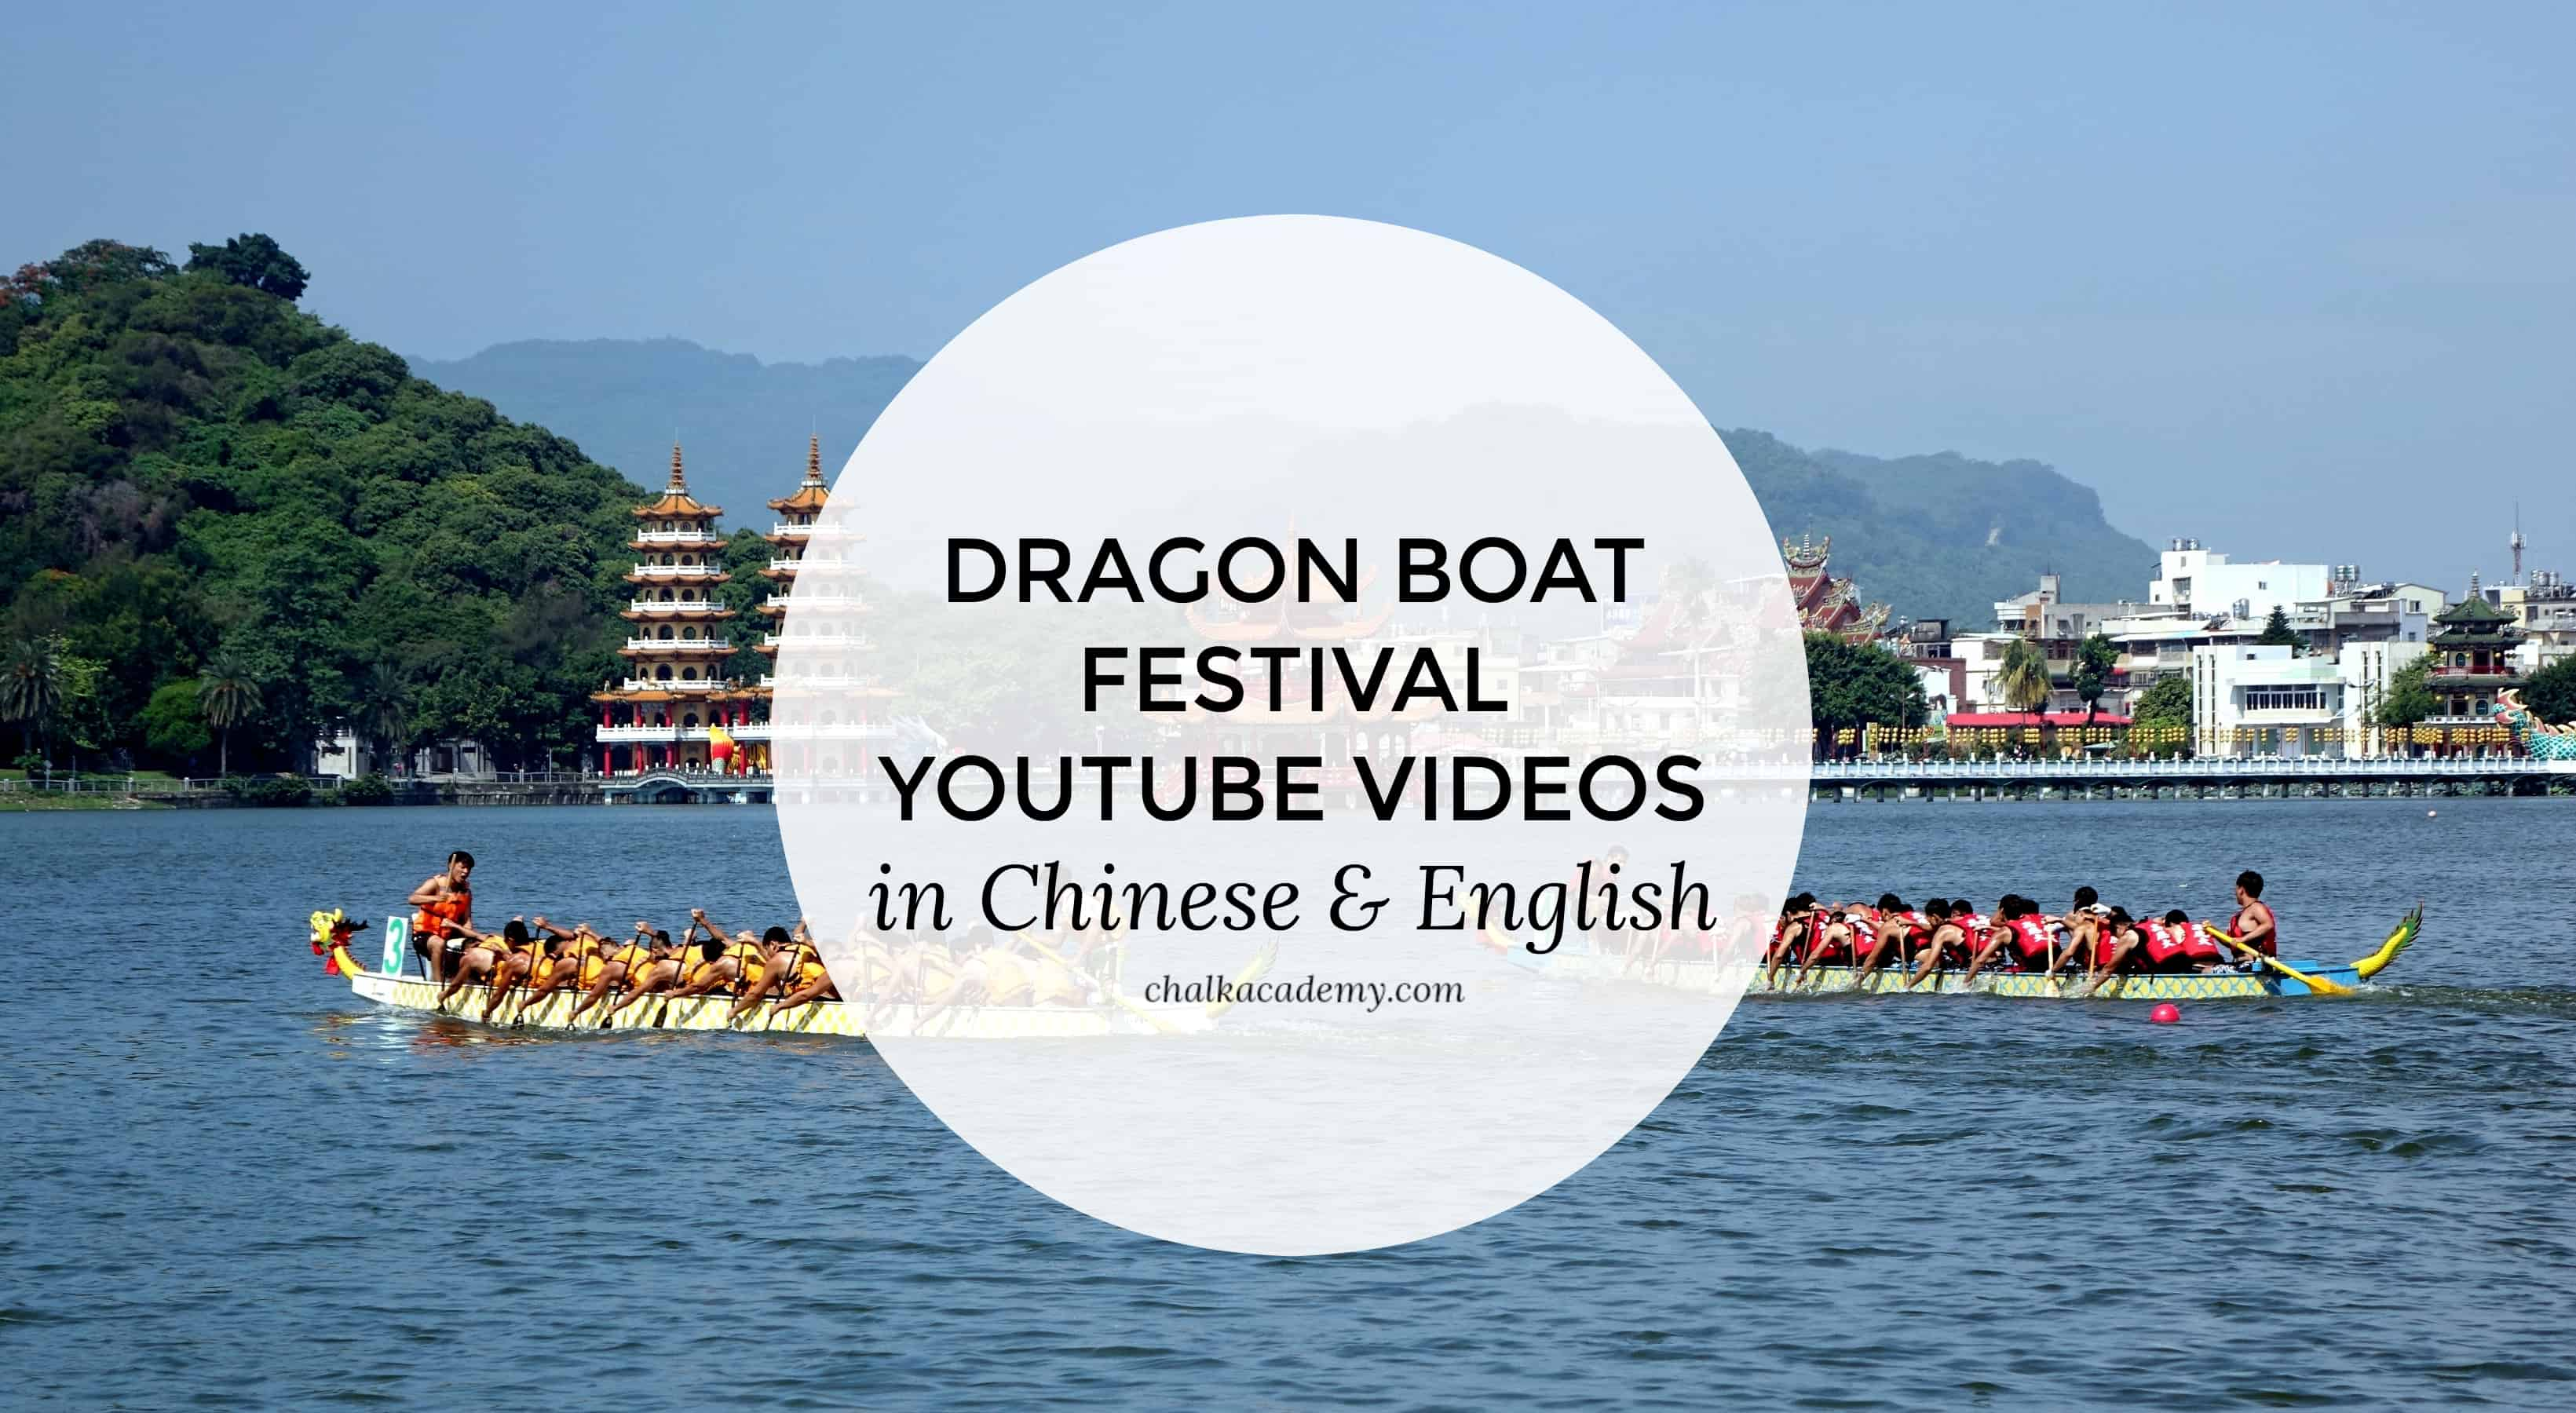 8 Dragon Boat Festival Youtube Videos In Chinese